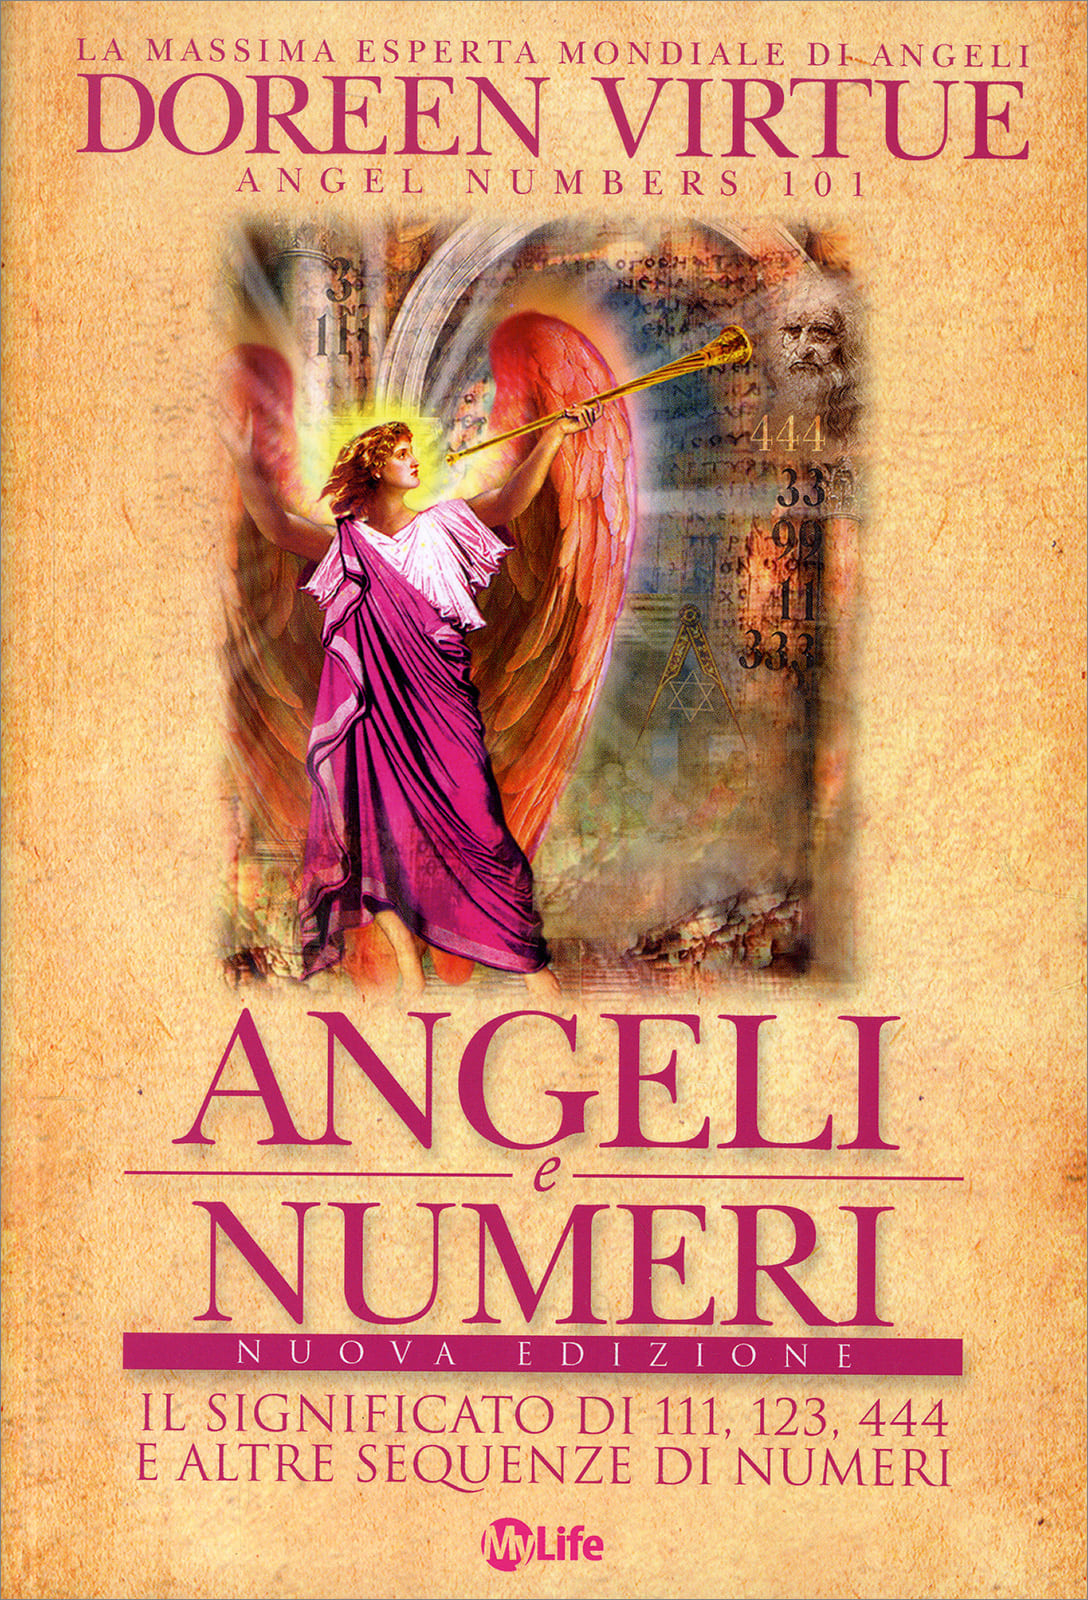 angeli e numeri - doreen virtue animaceleste.it recensione libri